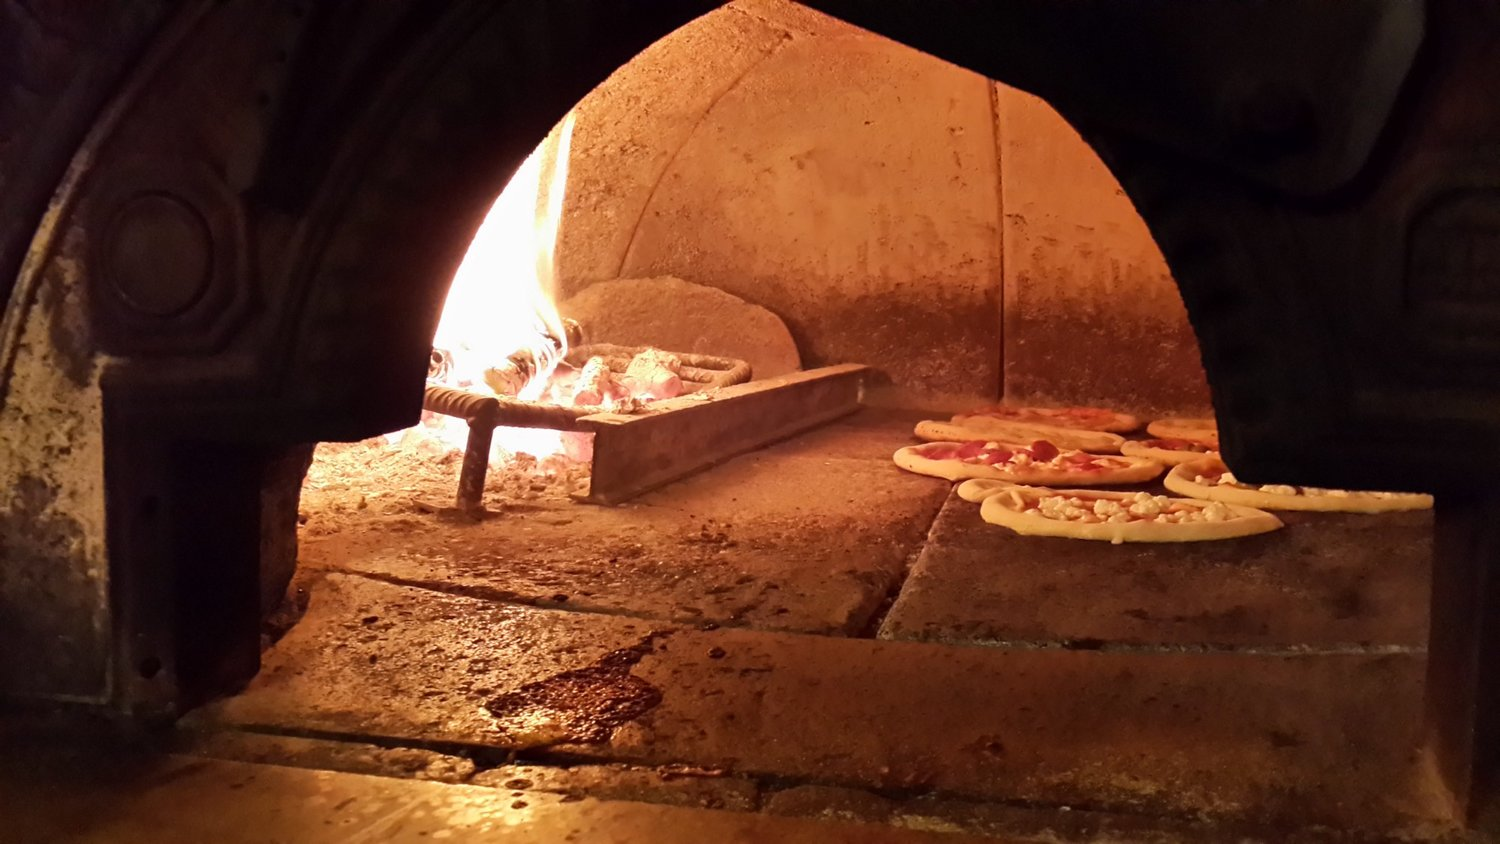 Stone oven, still the most traditional and better way to bake pizza.